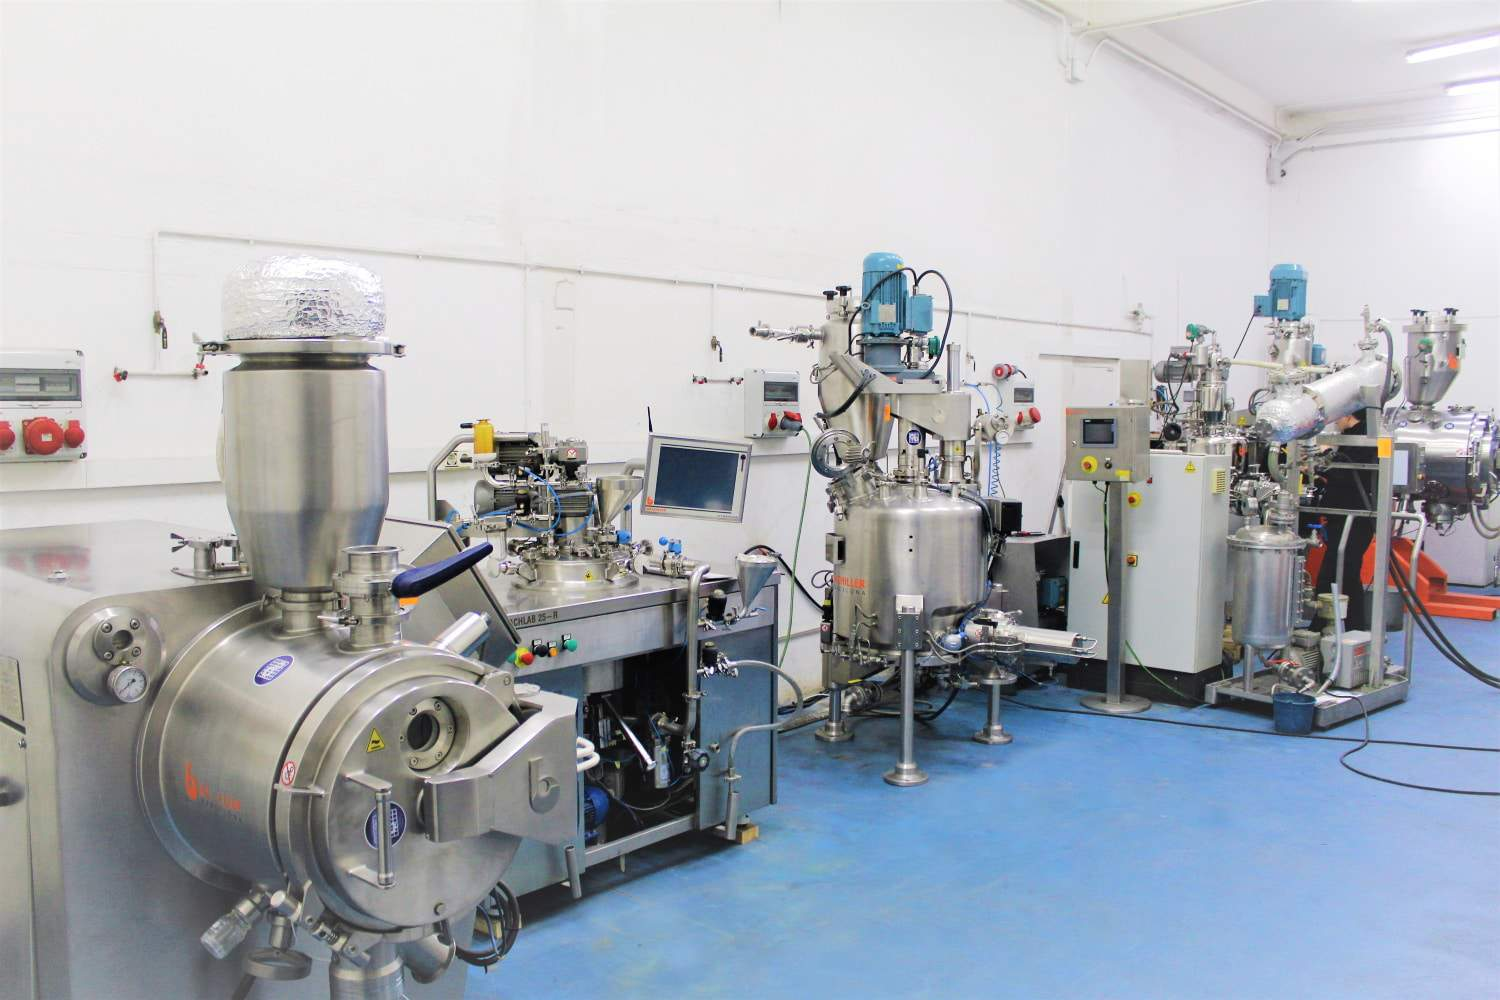 Bachiller Barcelona Opens A Testing Laboratory For Filtering And Drying Process Development